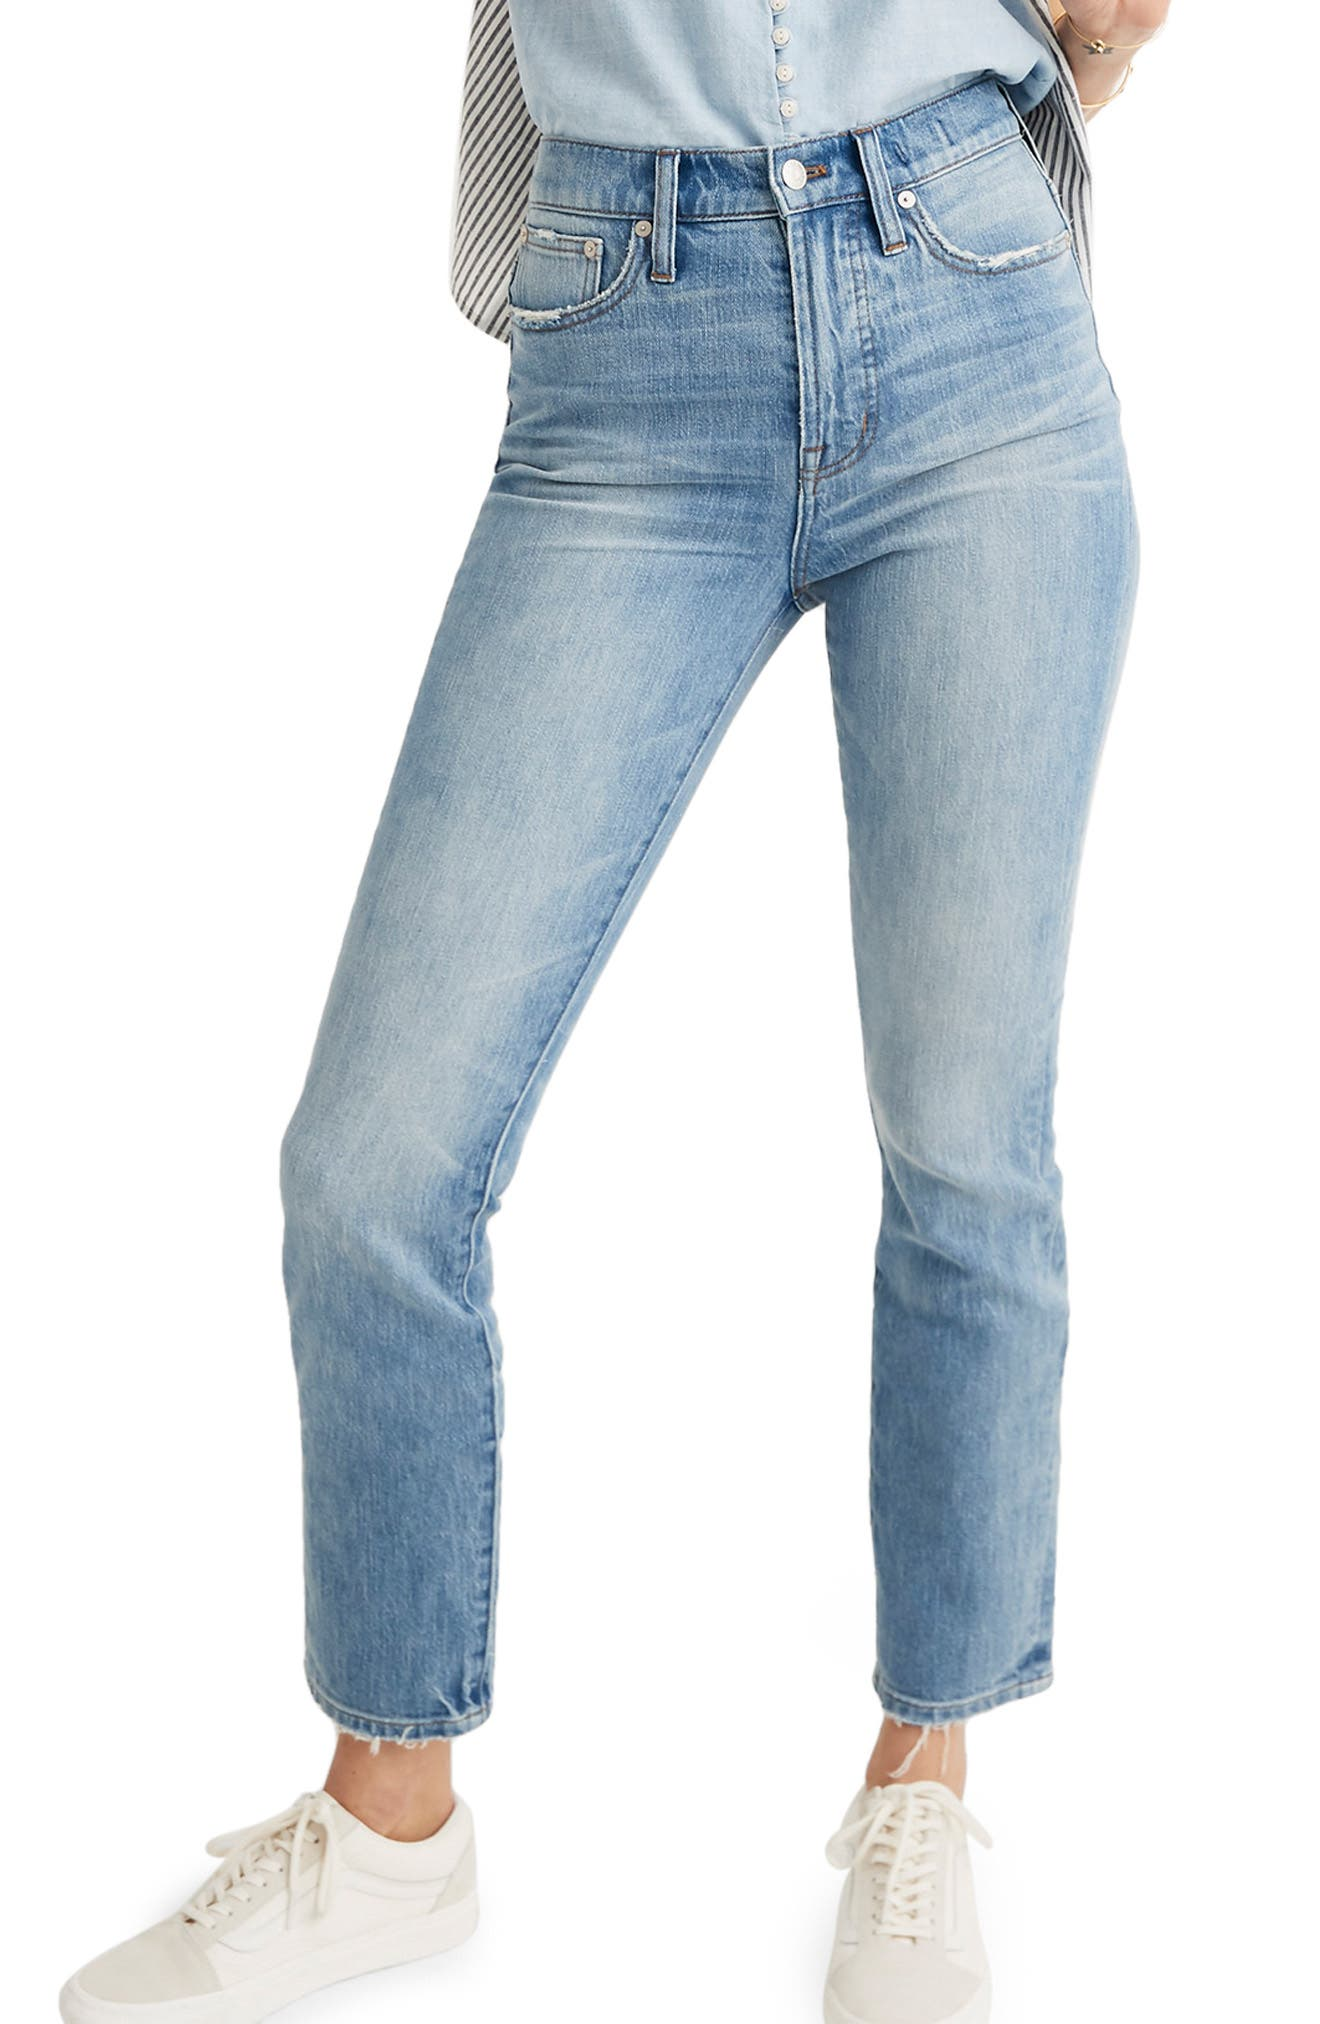 MADEWELL The Perfect Vintage Heart Patch High Waist Jeans, Main, color, ATWATER WASH